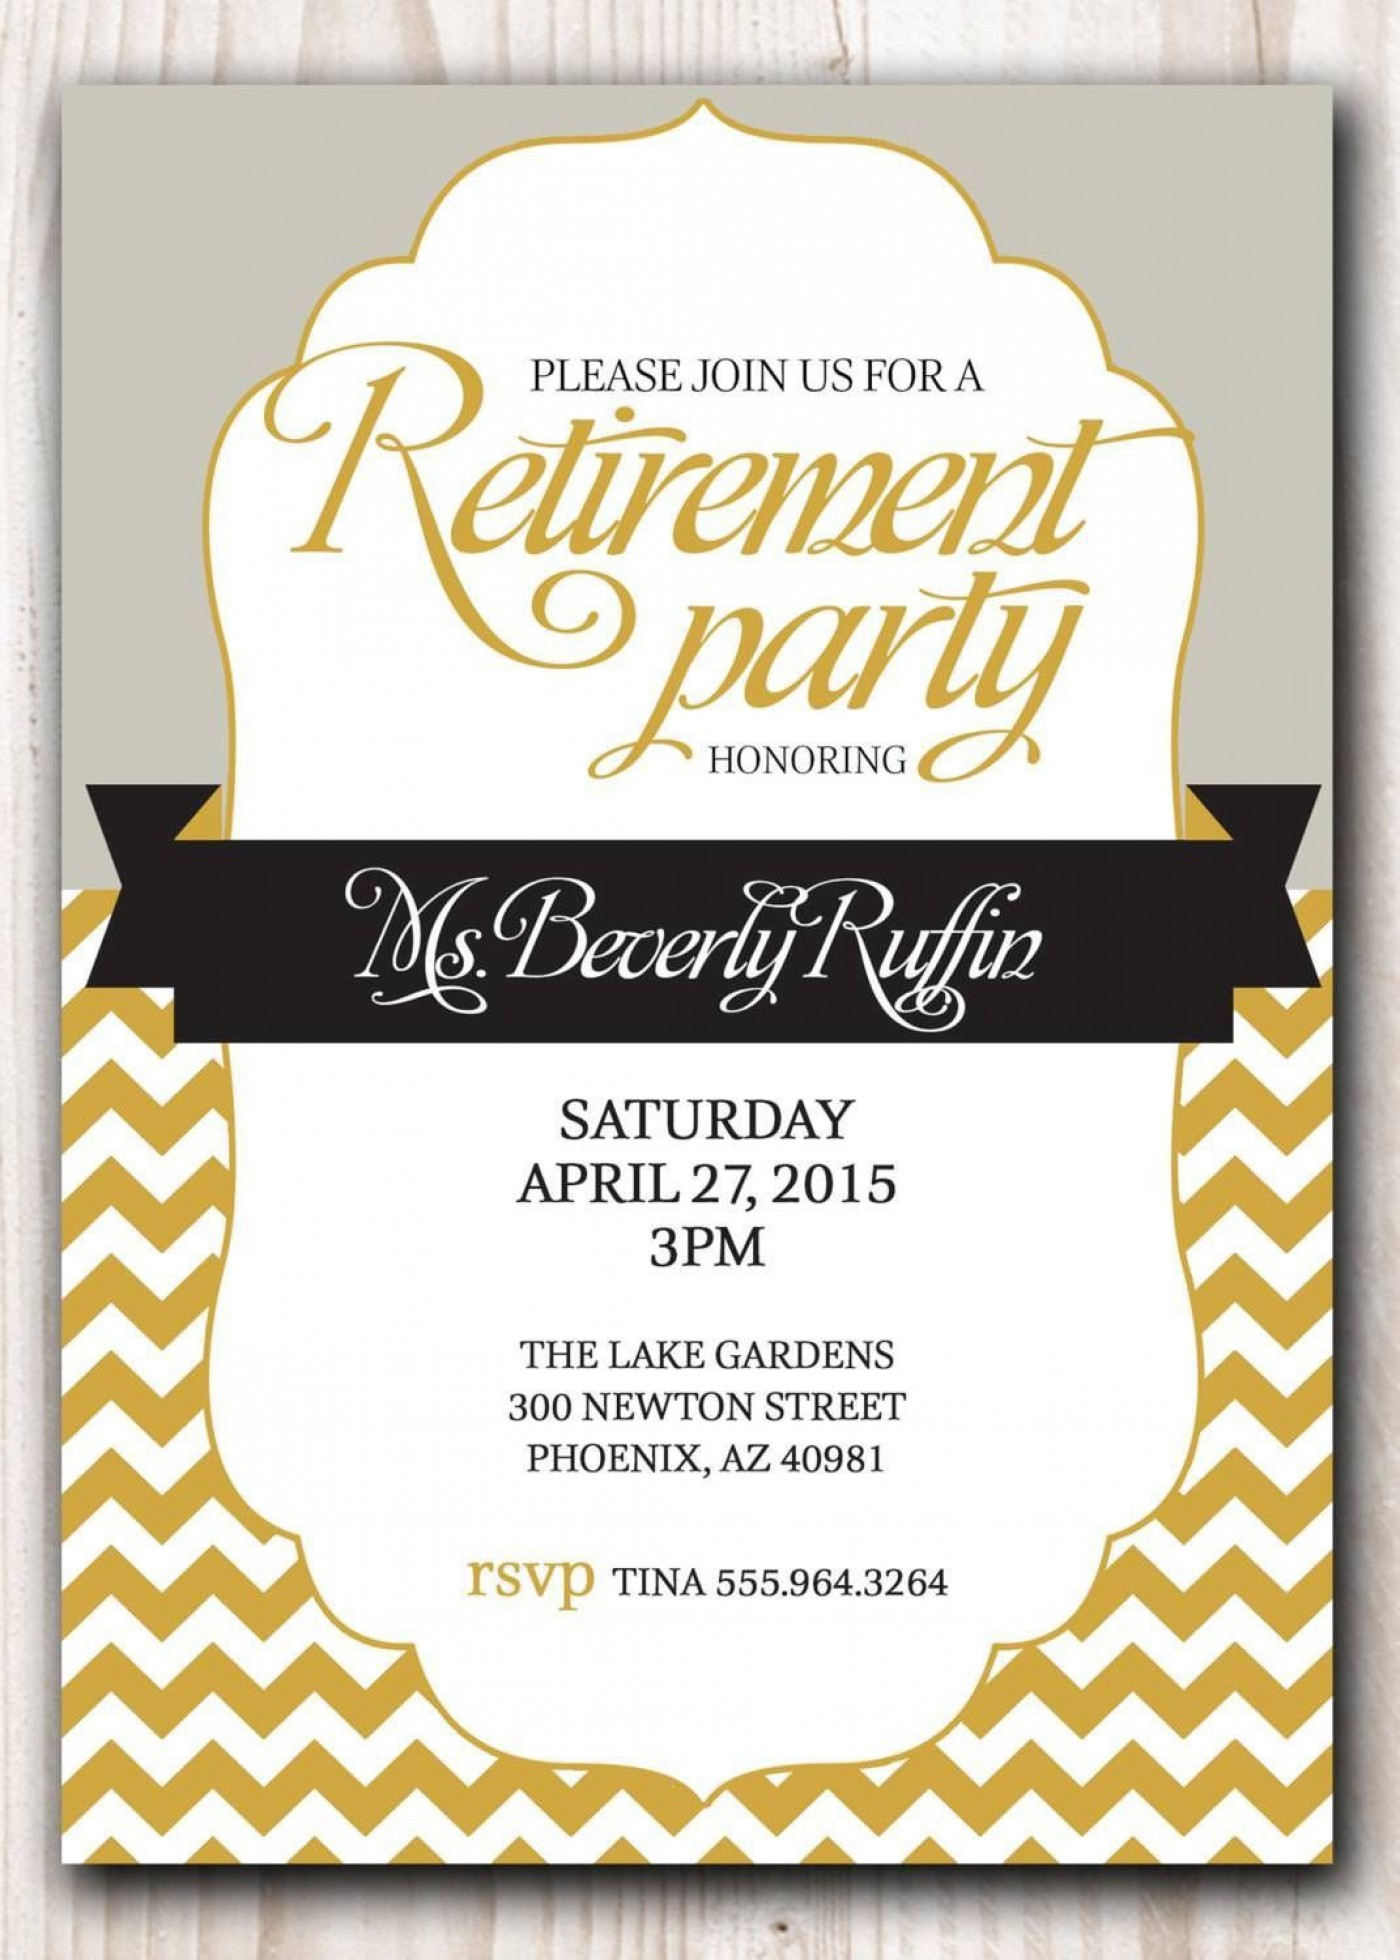 008 Incredible Retirement Party Invite Template Word Free Design 1400